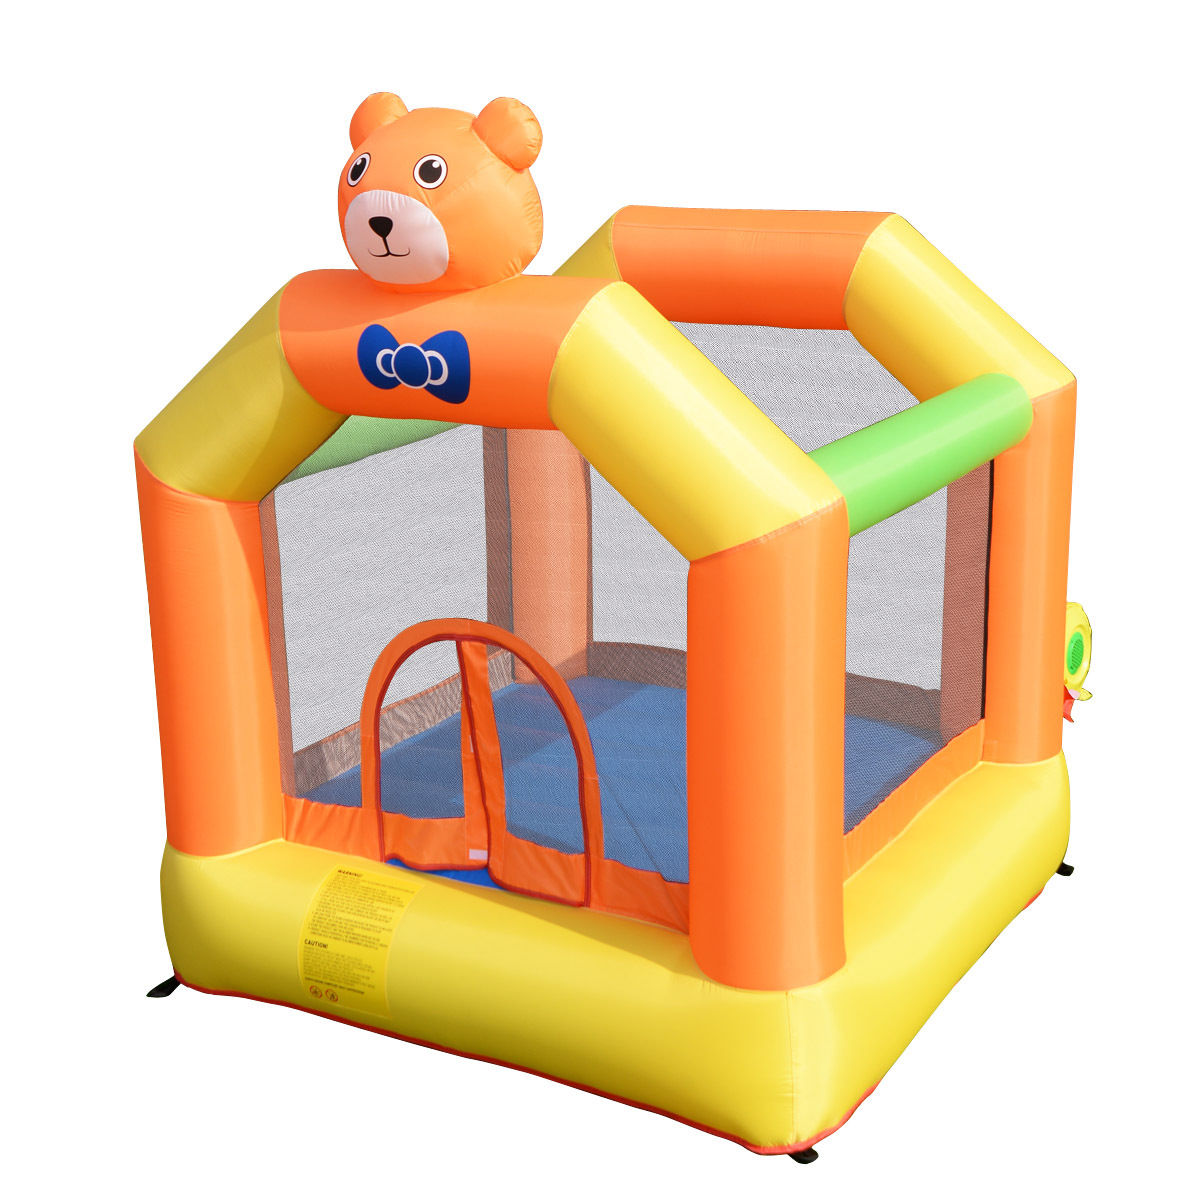 Costway Inflatable Little Bear Bounce House Jumper Moonwalk Outdoor Kids Without Blower by Costway